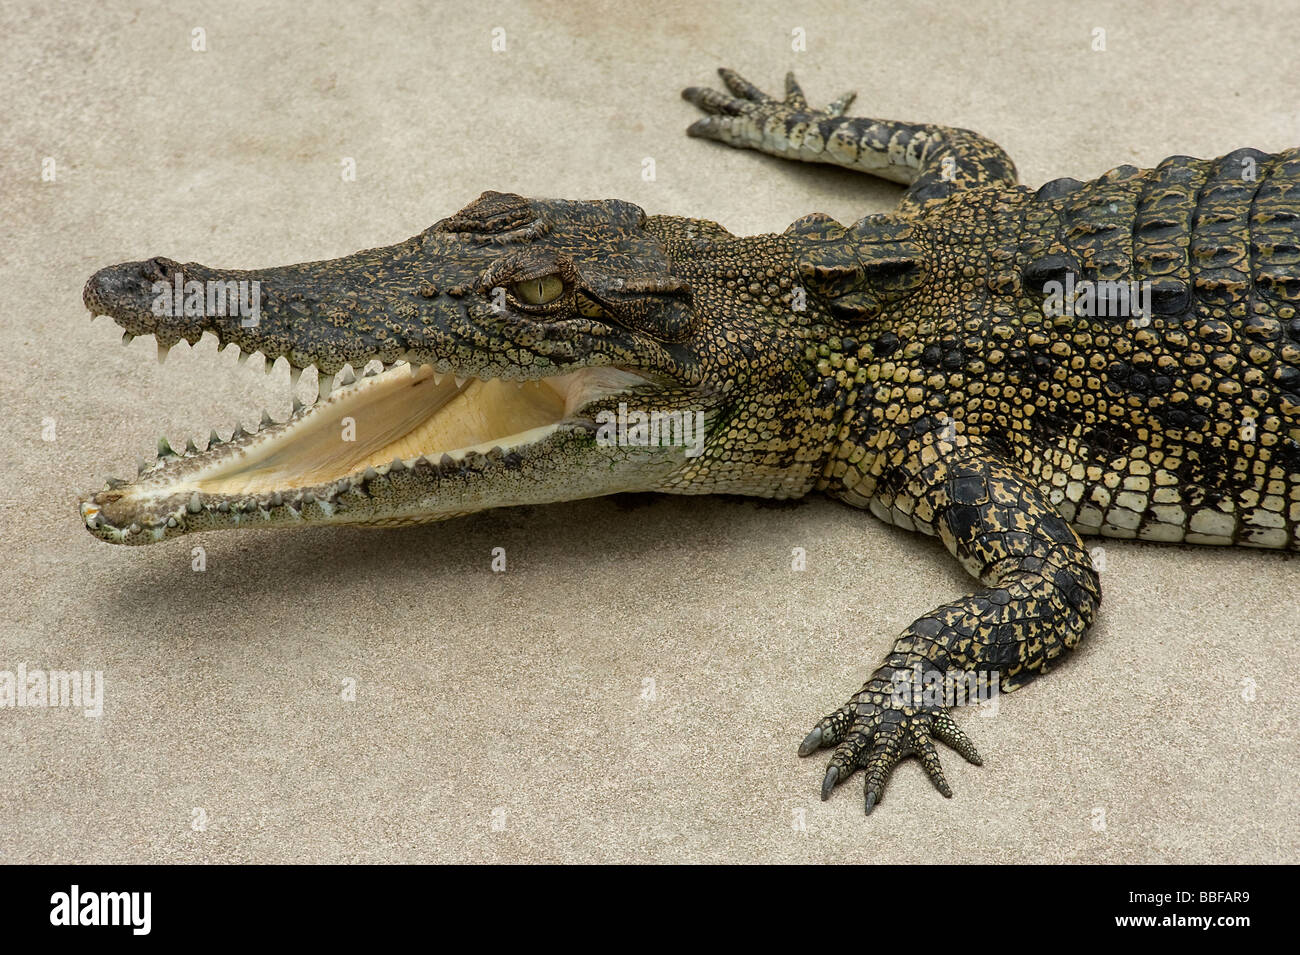 Farmed saltwater crocodile Crocodylus porosus with mouth agape Australia - Stock Image